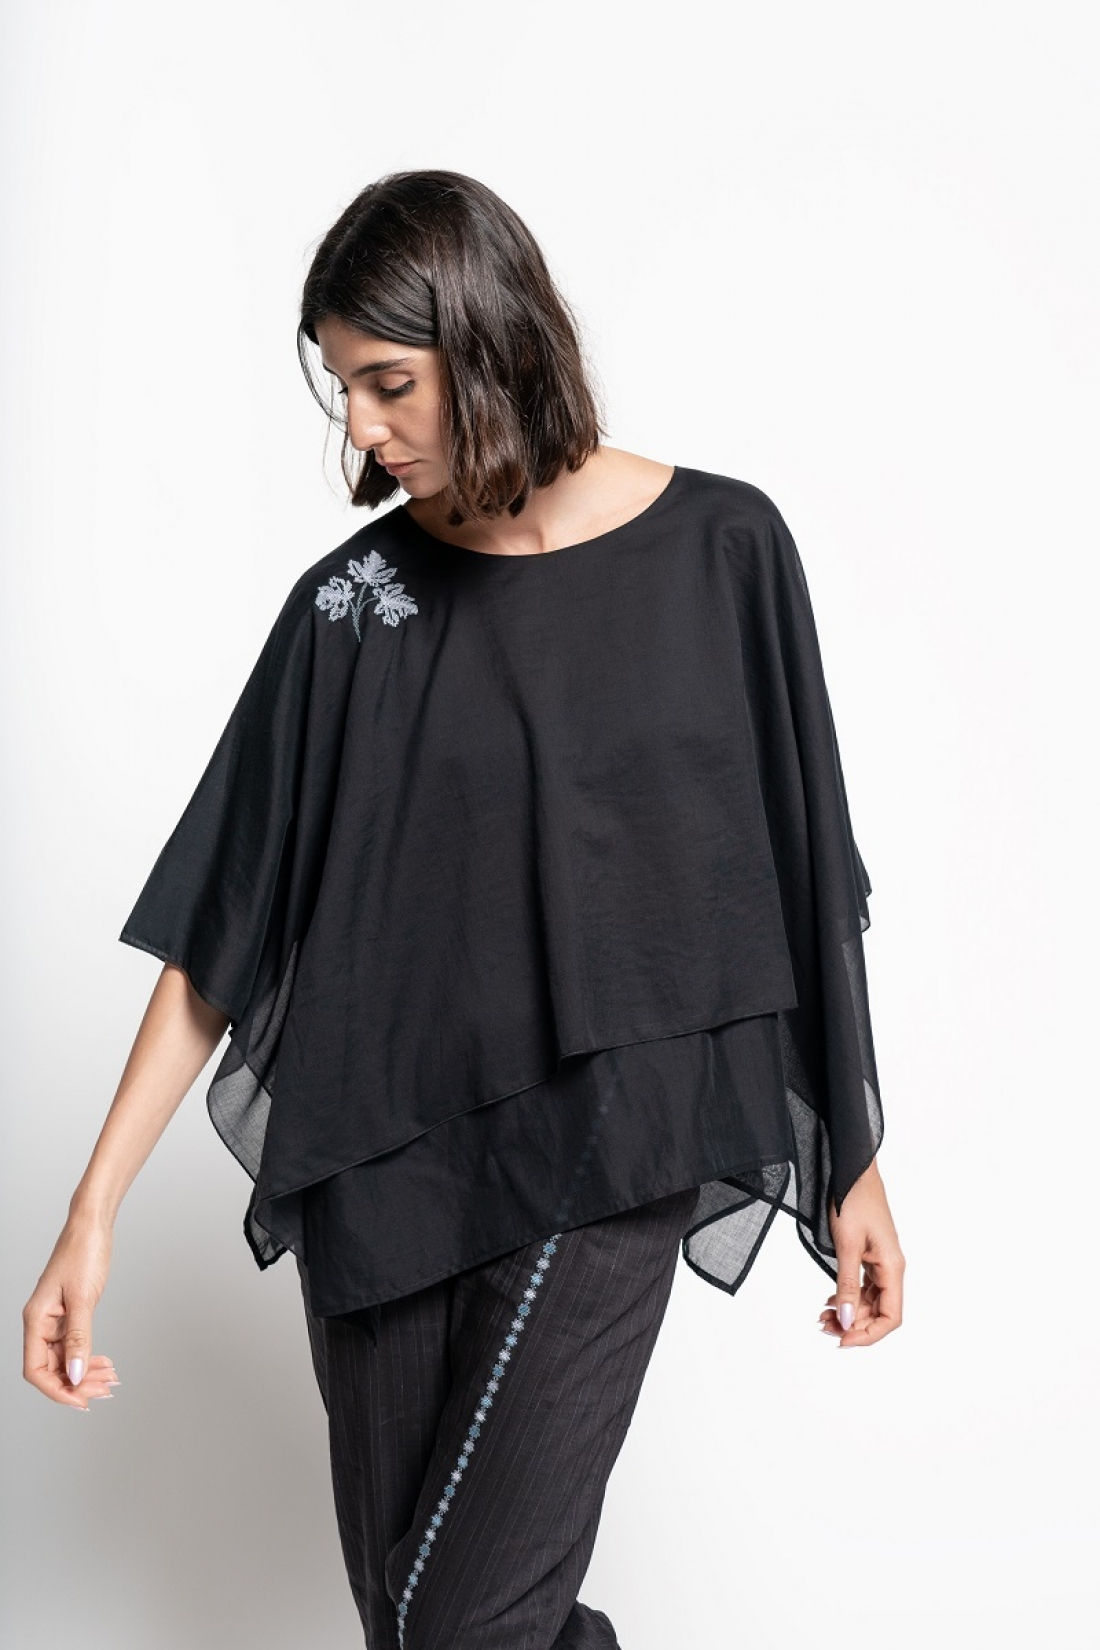 Double Flared Hand embroidered Black Top